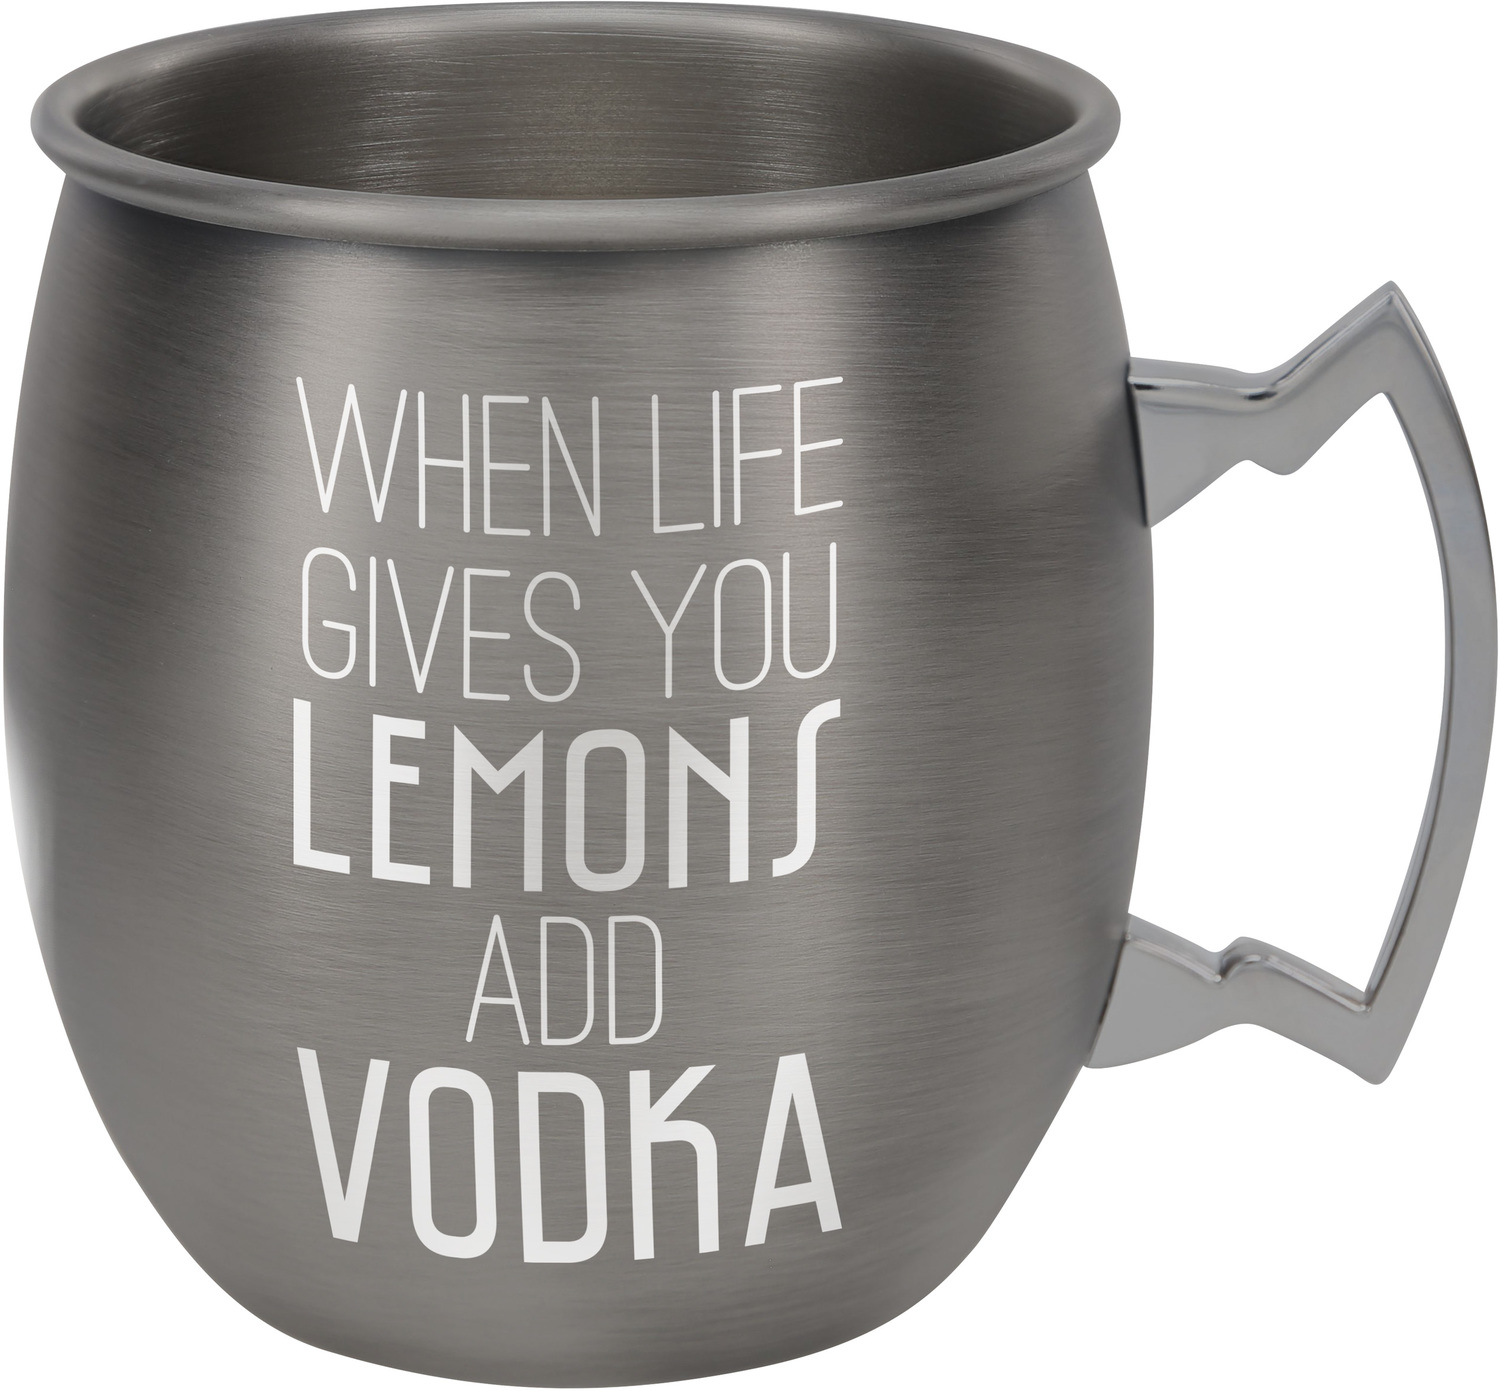 Add Vodka by Man Crafted - Add Vodka - 20 oz Stainless Steel Moscow Mule